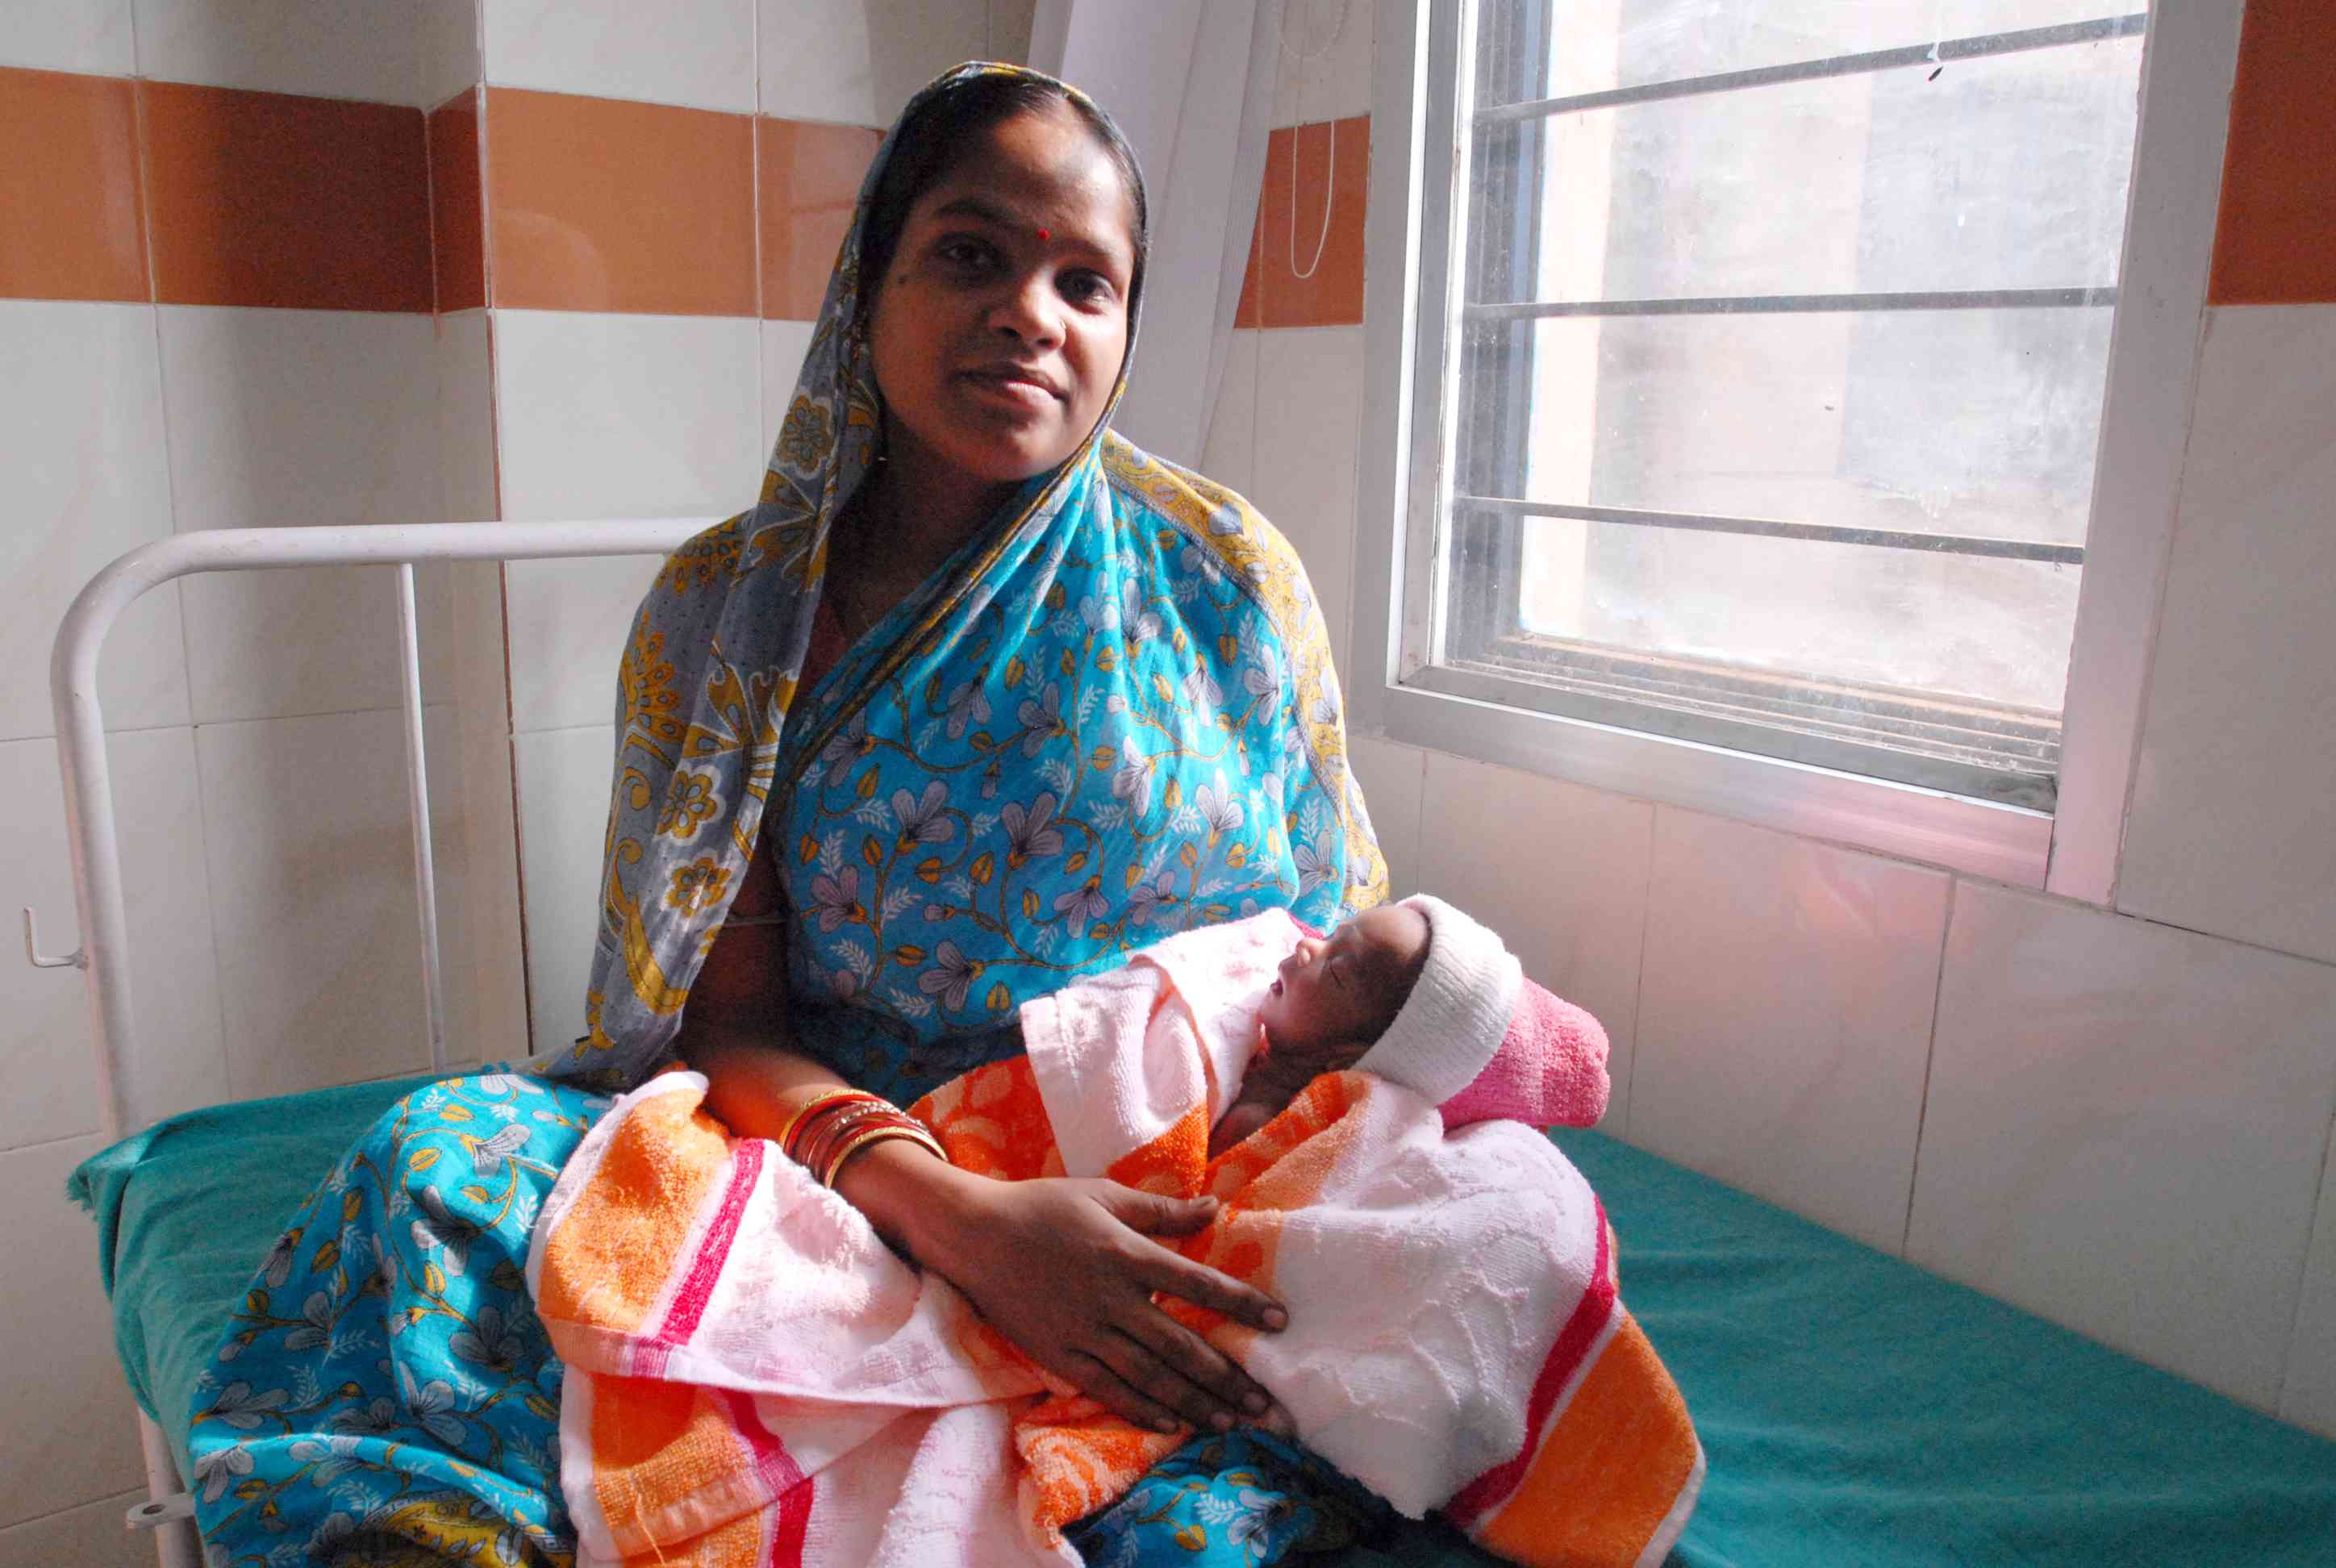 A mother and her newborn child, beneficiaries of a UK-funded maternal health and family planning programme in Orissa, one India's poorest states. Photo Credit: Pippa Ranger/Department for International Development [Licensed under CC BY 2.0]